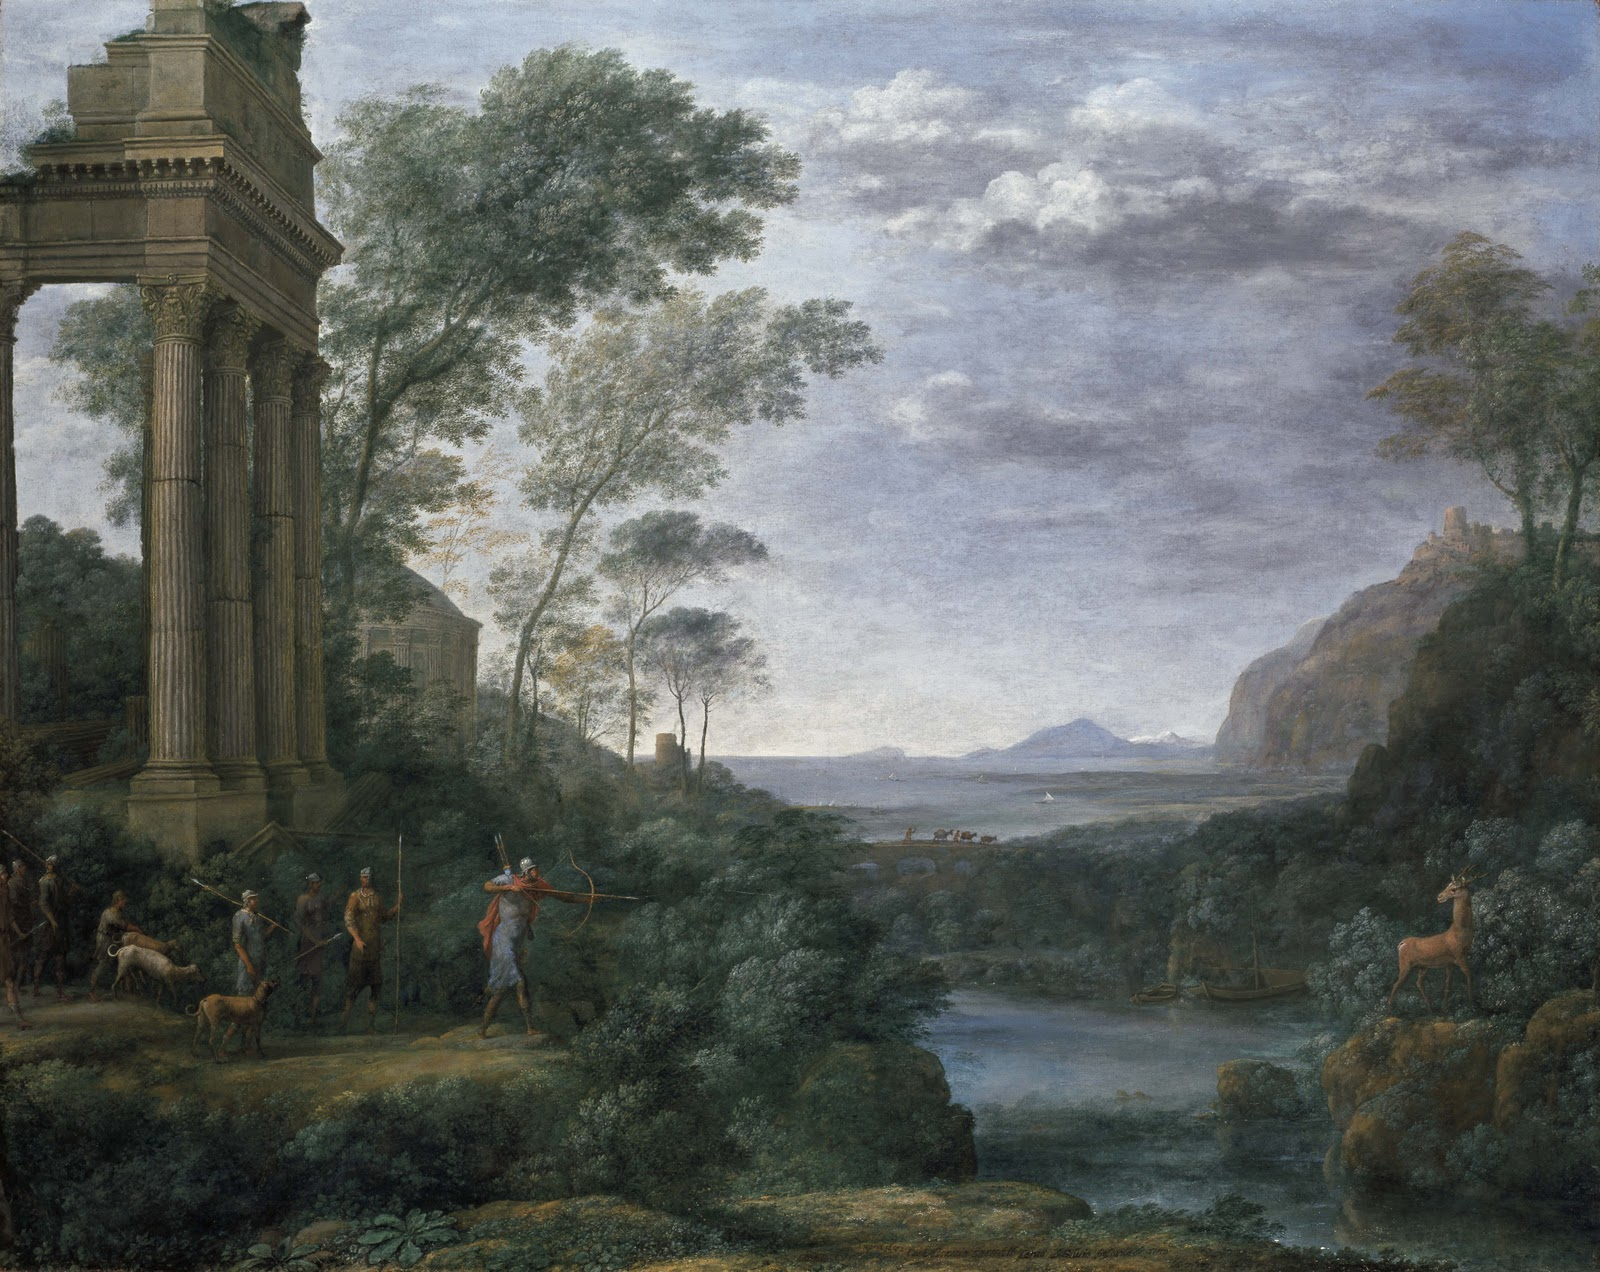 Ascanius_Shooting_the_Stag_of_Sylvia_1682_Claude_Lorrain.jpg